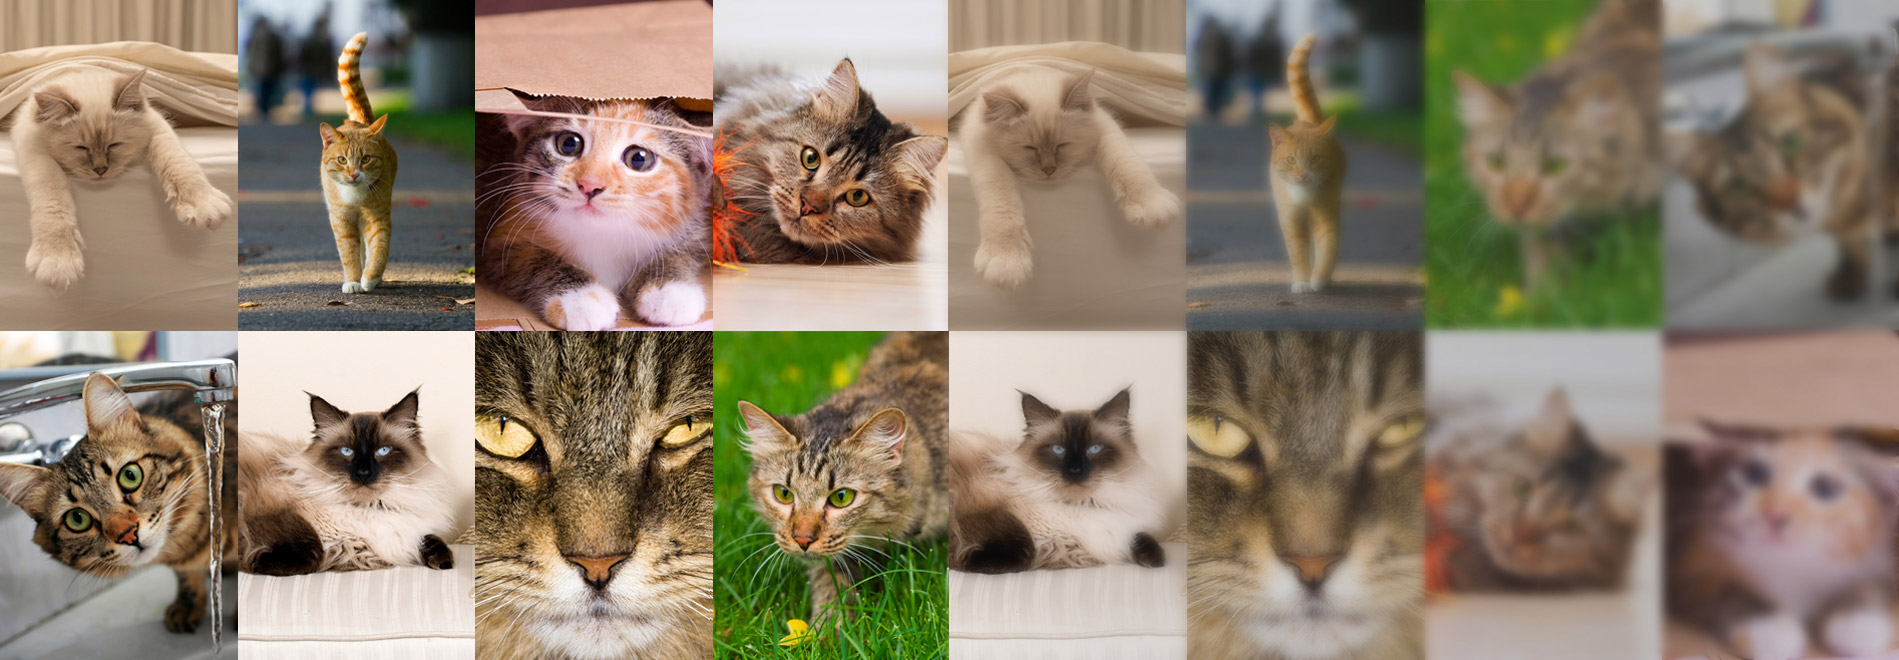 What is your cat personality?